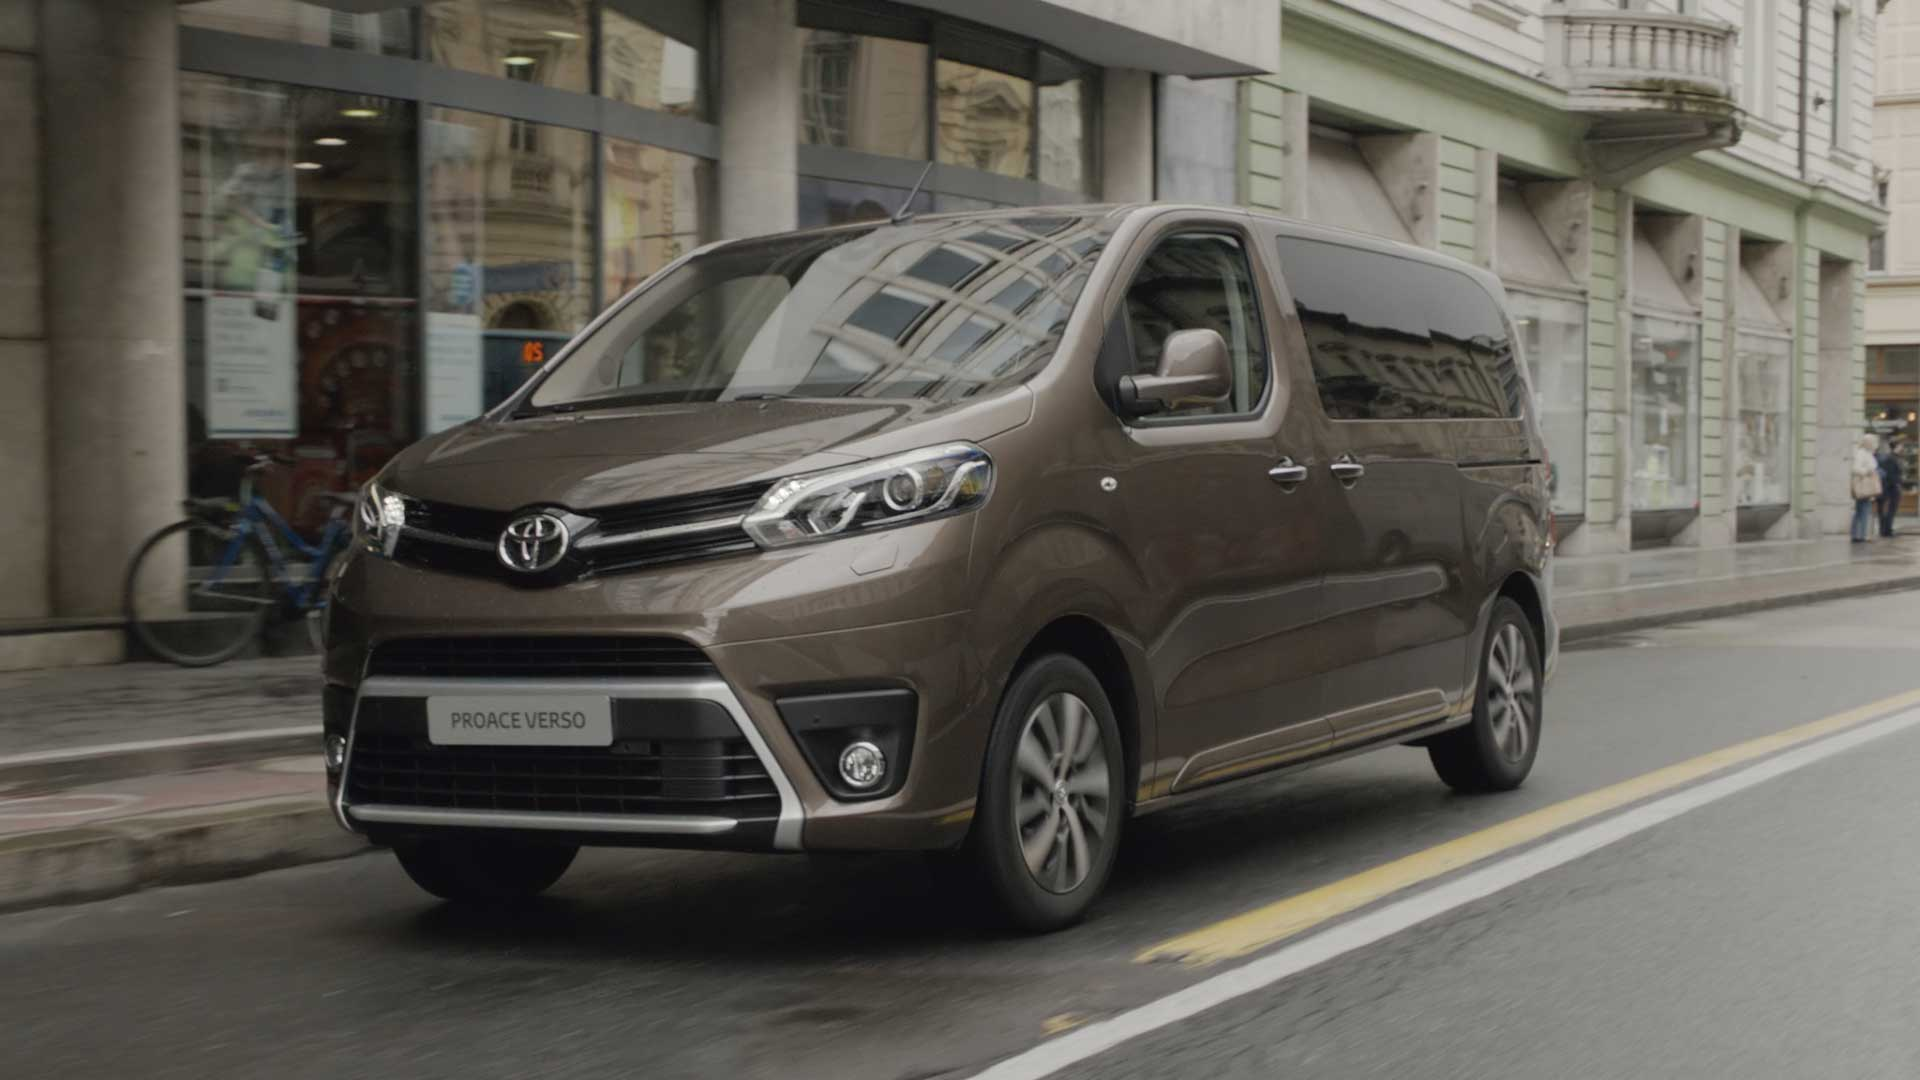 Poster image of Toyota ProAce Verso